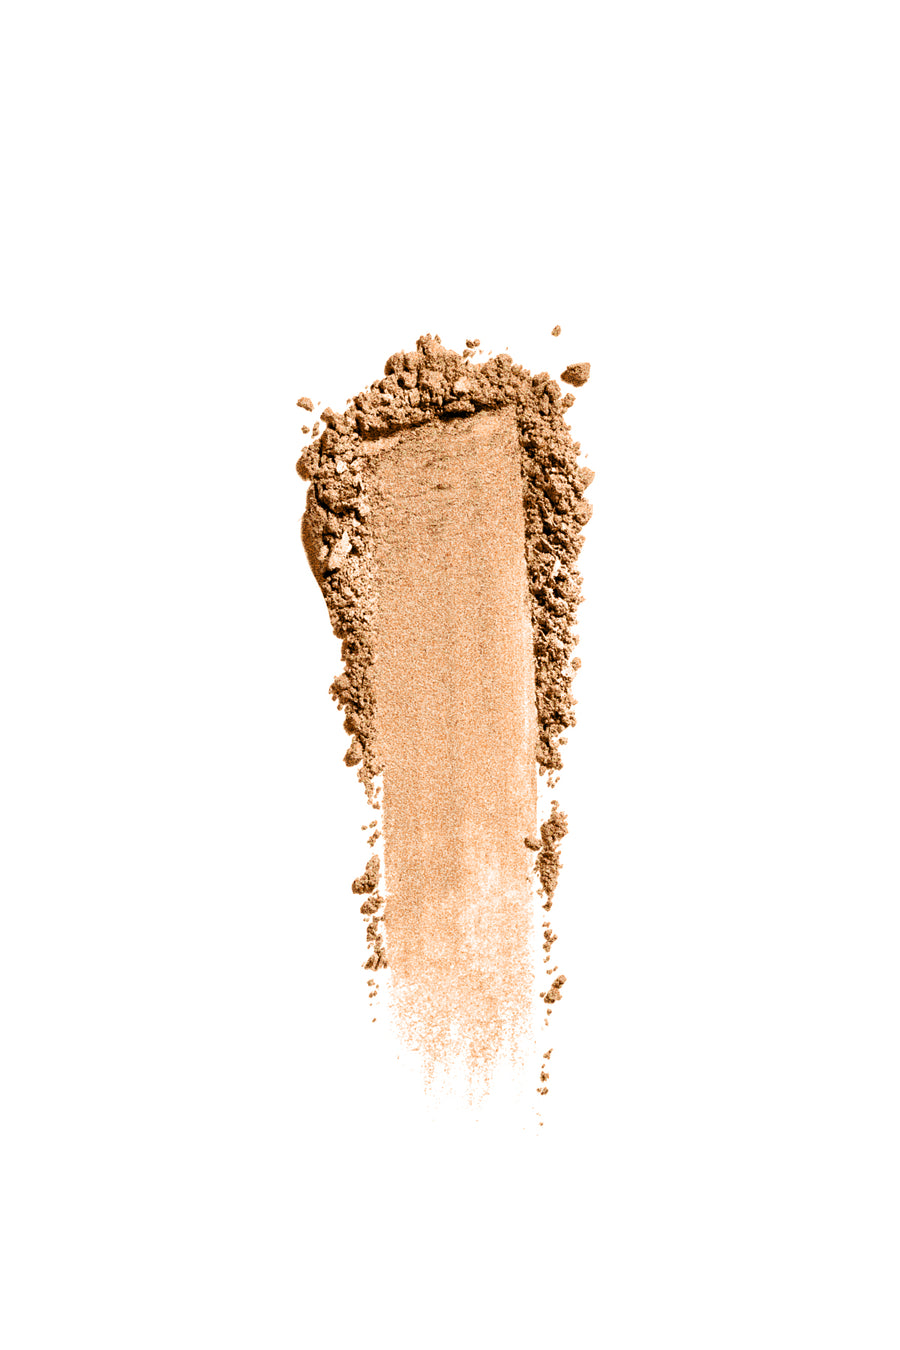 Shimmer Eyeshadow #29 - Champagne - Blend Mineral Cosmetics